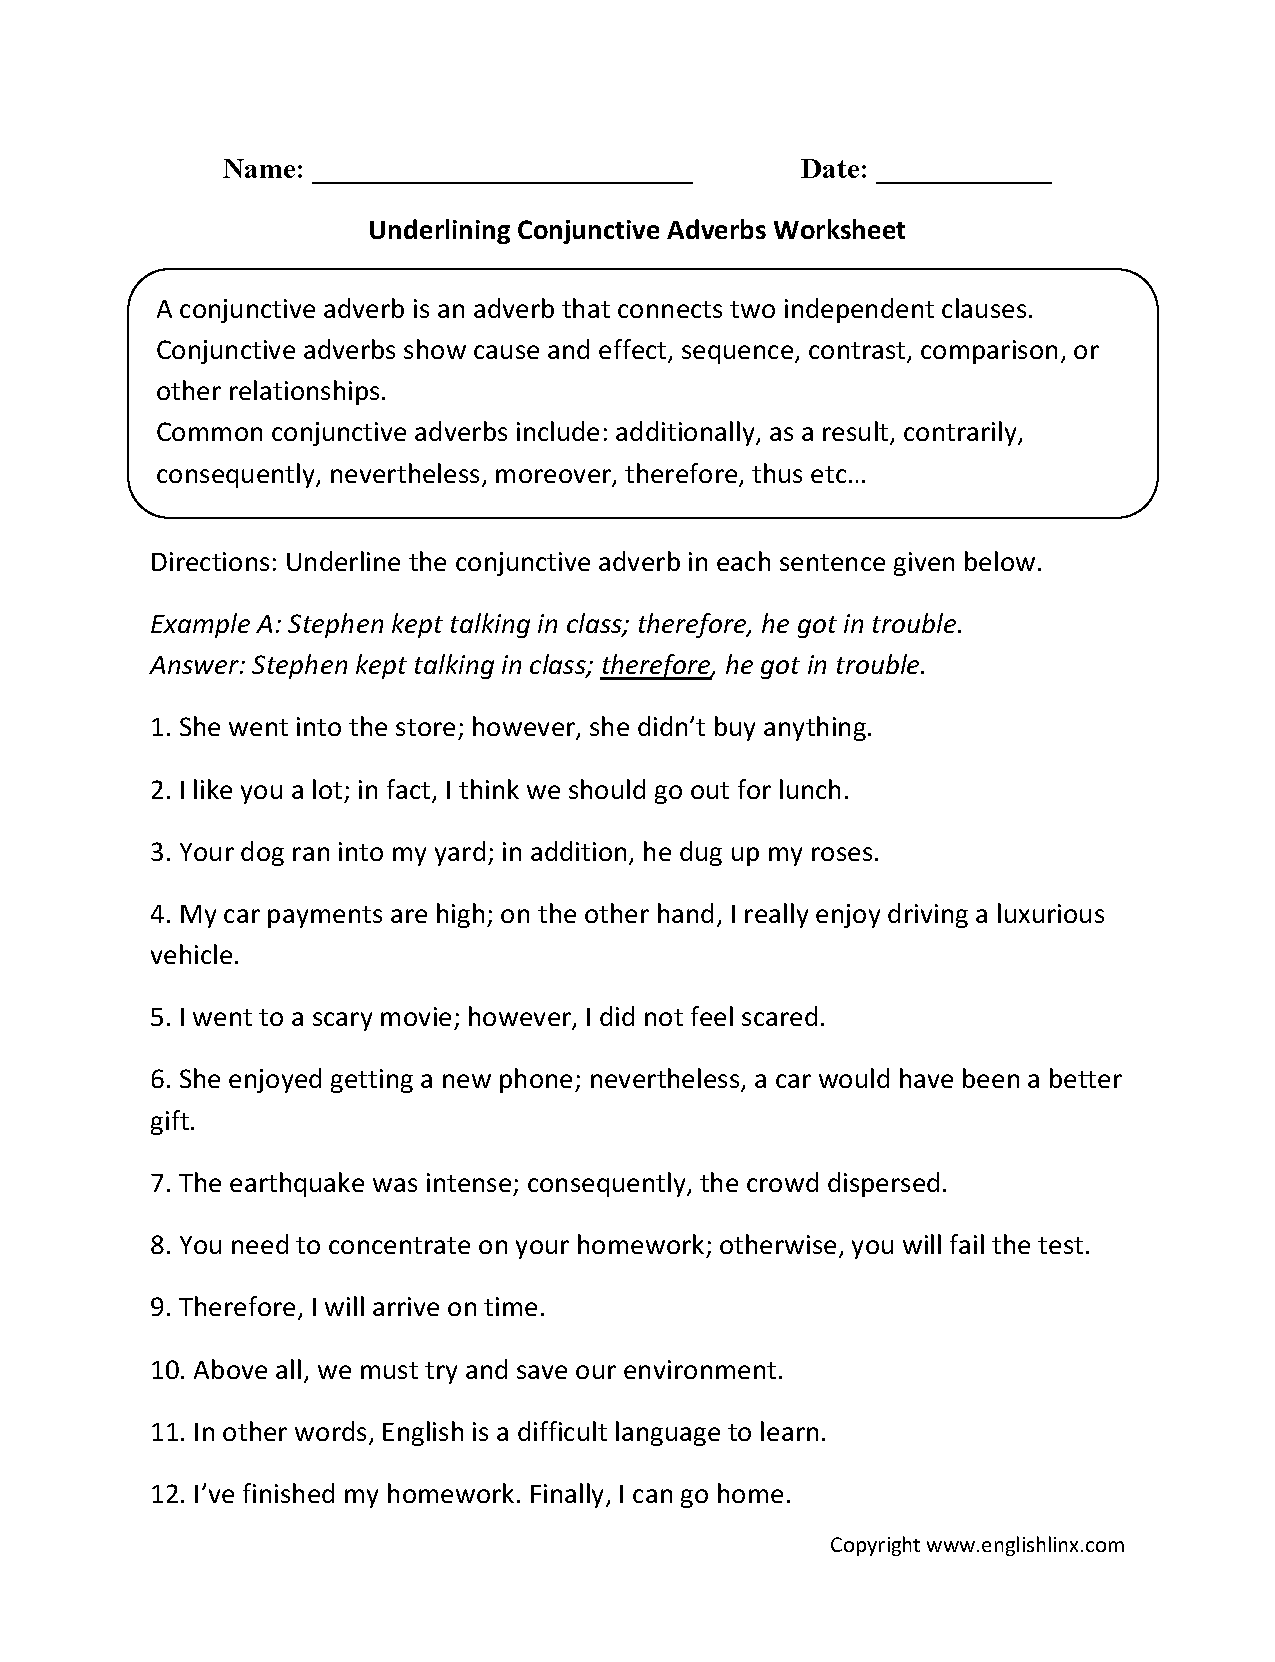 Aldiablosus  Pleasant Englishlinxcom  Conjunctions Worksheets With Engaging Worksheet With Delectable Consonant Blends Worksheets For Second Grade Also Calculating Wages Worksheets In Addition Homophone Worksheets For Middle School And Compound Nouns Exercises Worksheets As Well As Tally Chart Worksheets Rd Grade Additionally Fill In The Blank Preposition Worksheets From Englishlinxcom With Aldiablosus  Engaging Englishlinxcom  Conjunctions Worksheets With Delectable Worksheet And Pleasant Consonant Blends Worksheets For Second Grade Also Calculating Wages Worksheets In Addition Homophone Worksheets For Middle School From Englishlinxcom